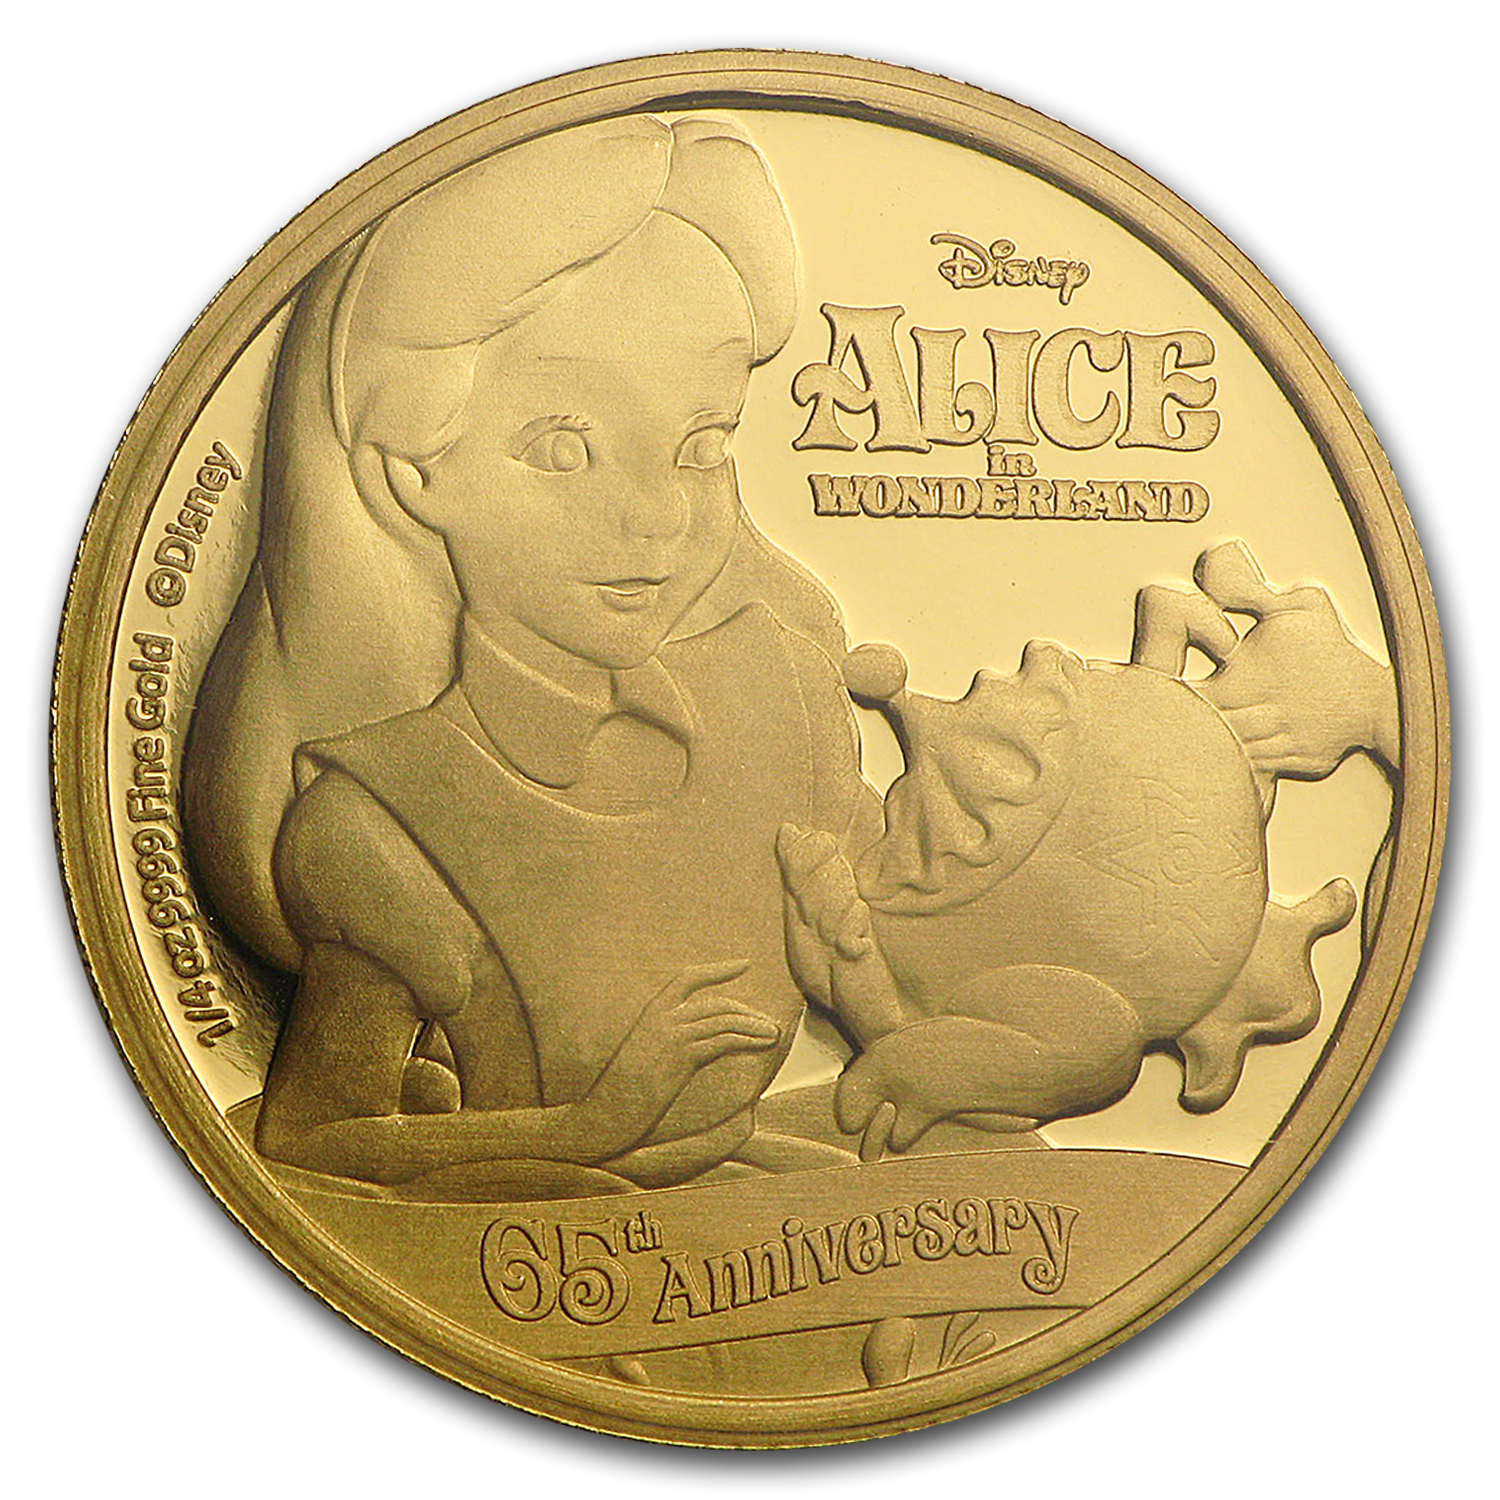 2016 Niue 1/4 oz Gold $25 Disney Anniv. of Alice in Wonderland